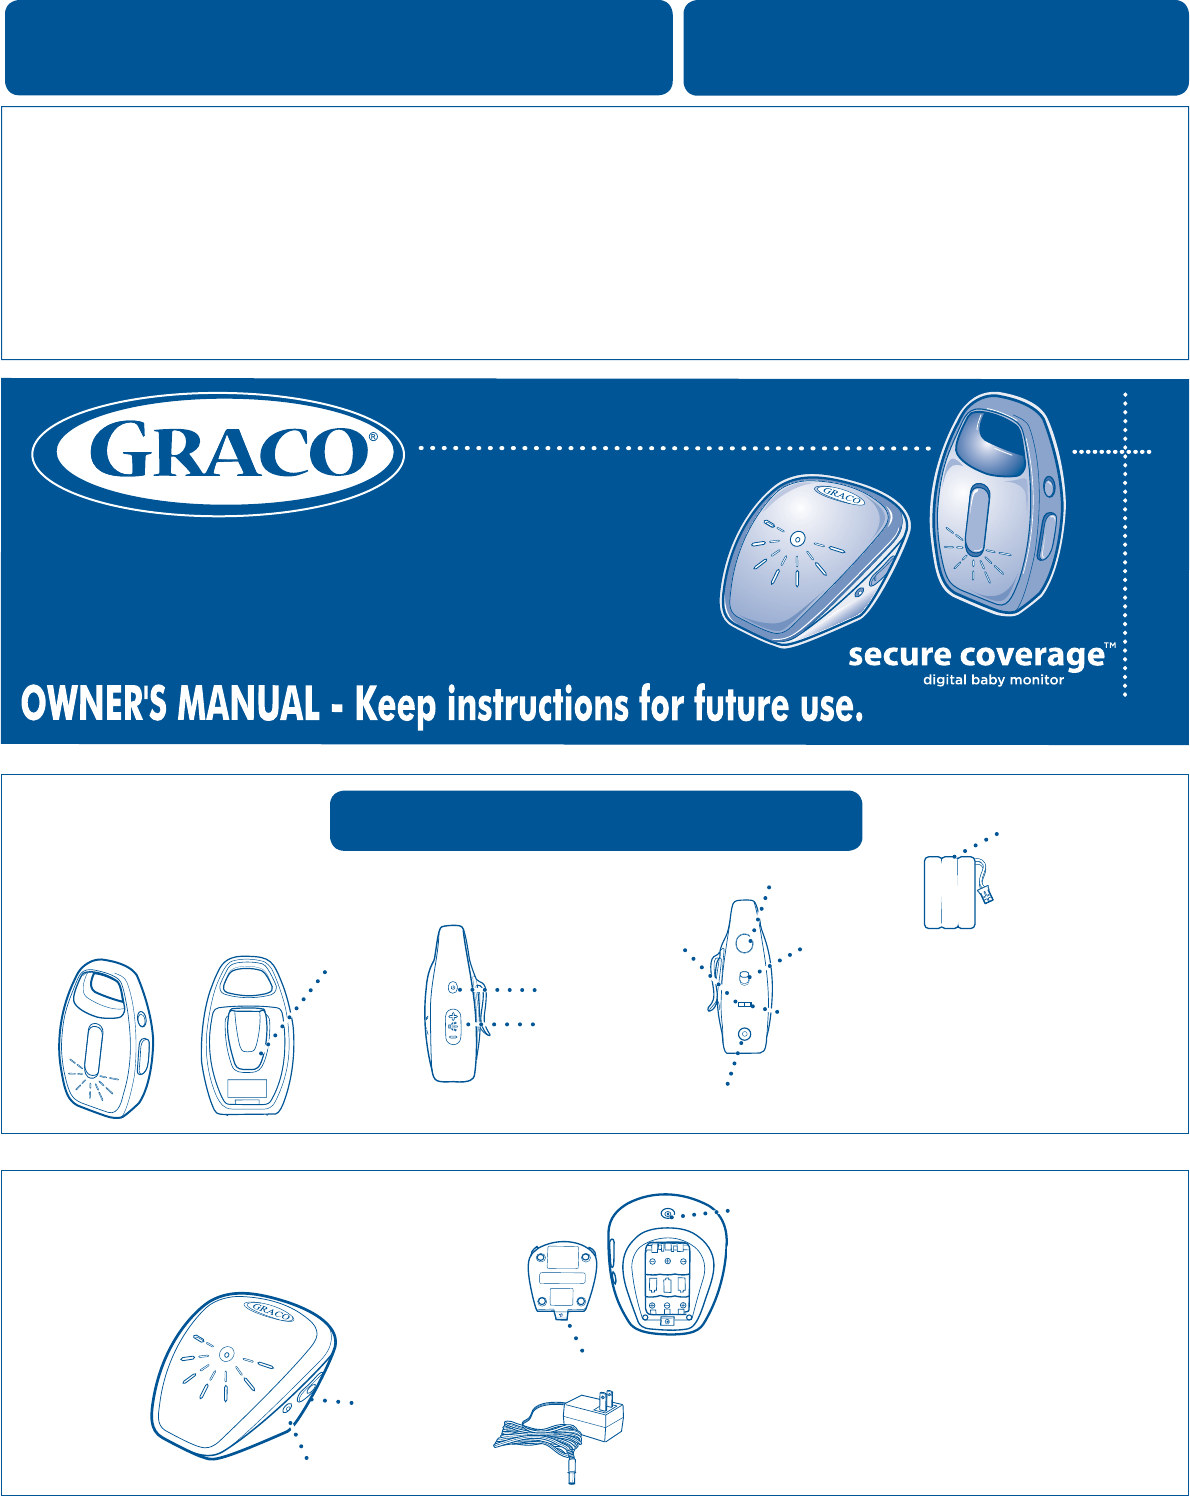 graco baby monitor 2m19 user guide manualsonline com rh babycare manualsonline com graco ultra clear baby monitor manual graco baby monitor manual with vibe